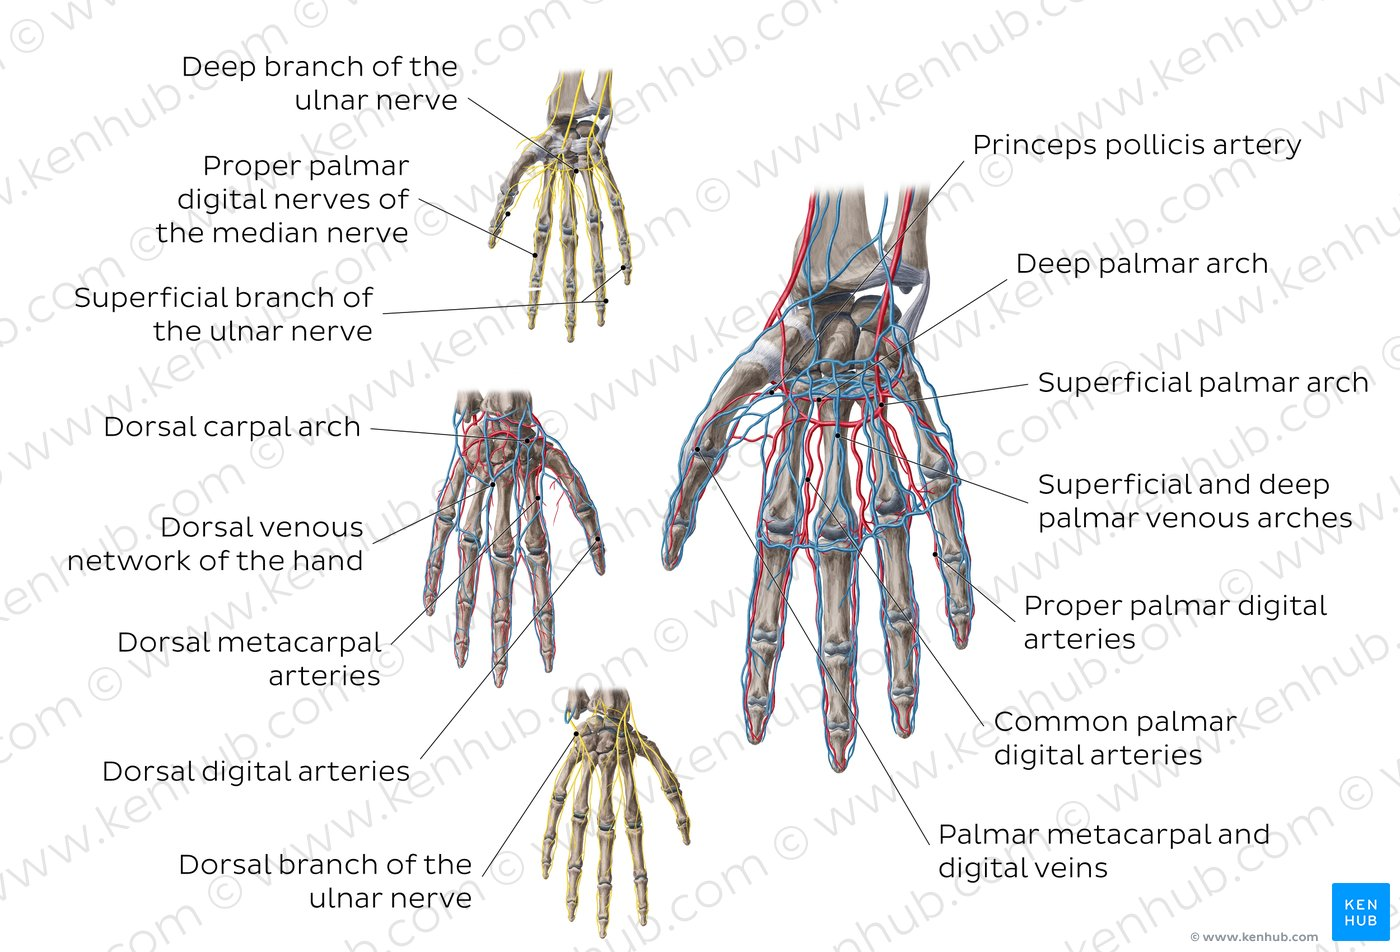 hand nerves diagram oil refining process pictures neurovasculature of the anatomy kenhub overview